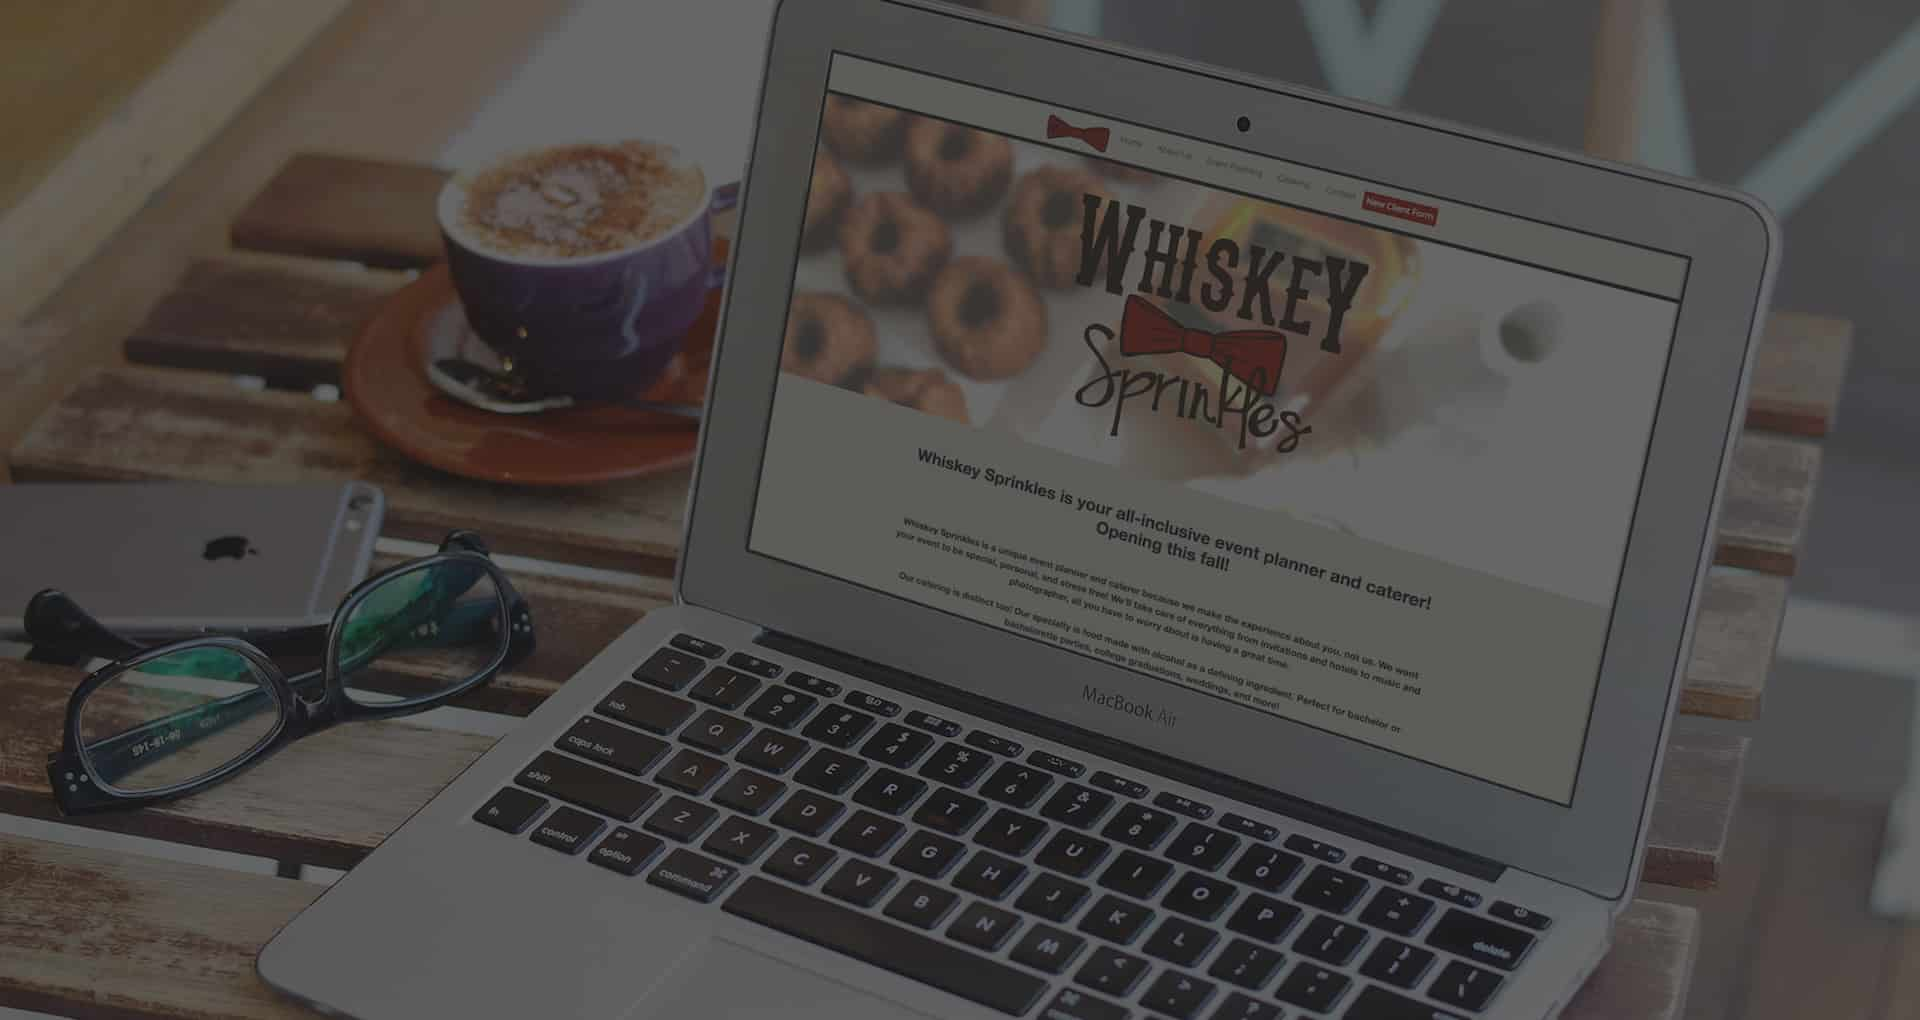 Wordpress Website Design in Madison, WI - Enlightened Owl Digital